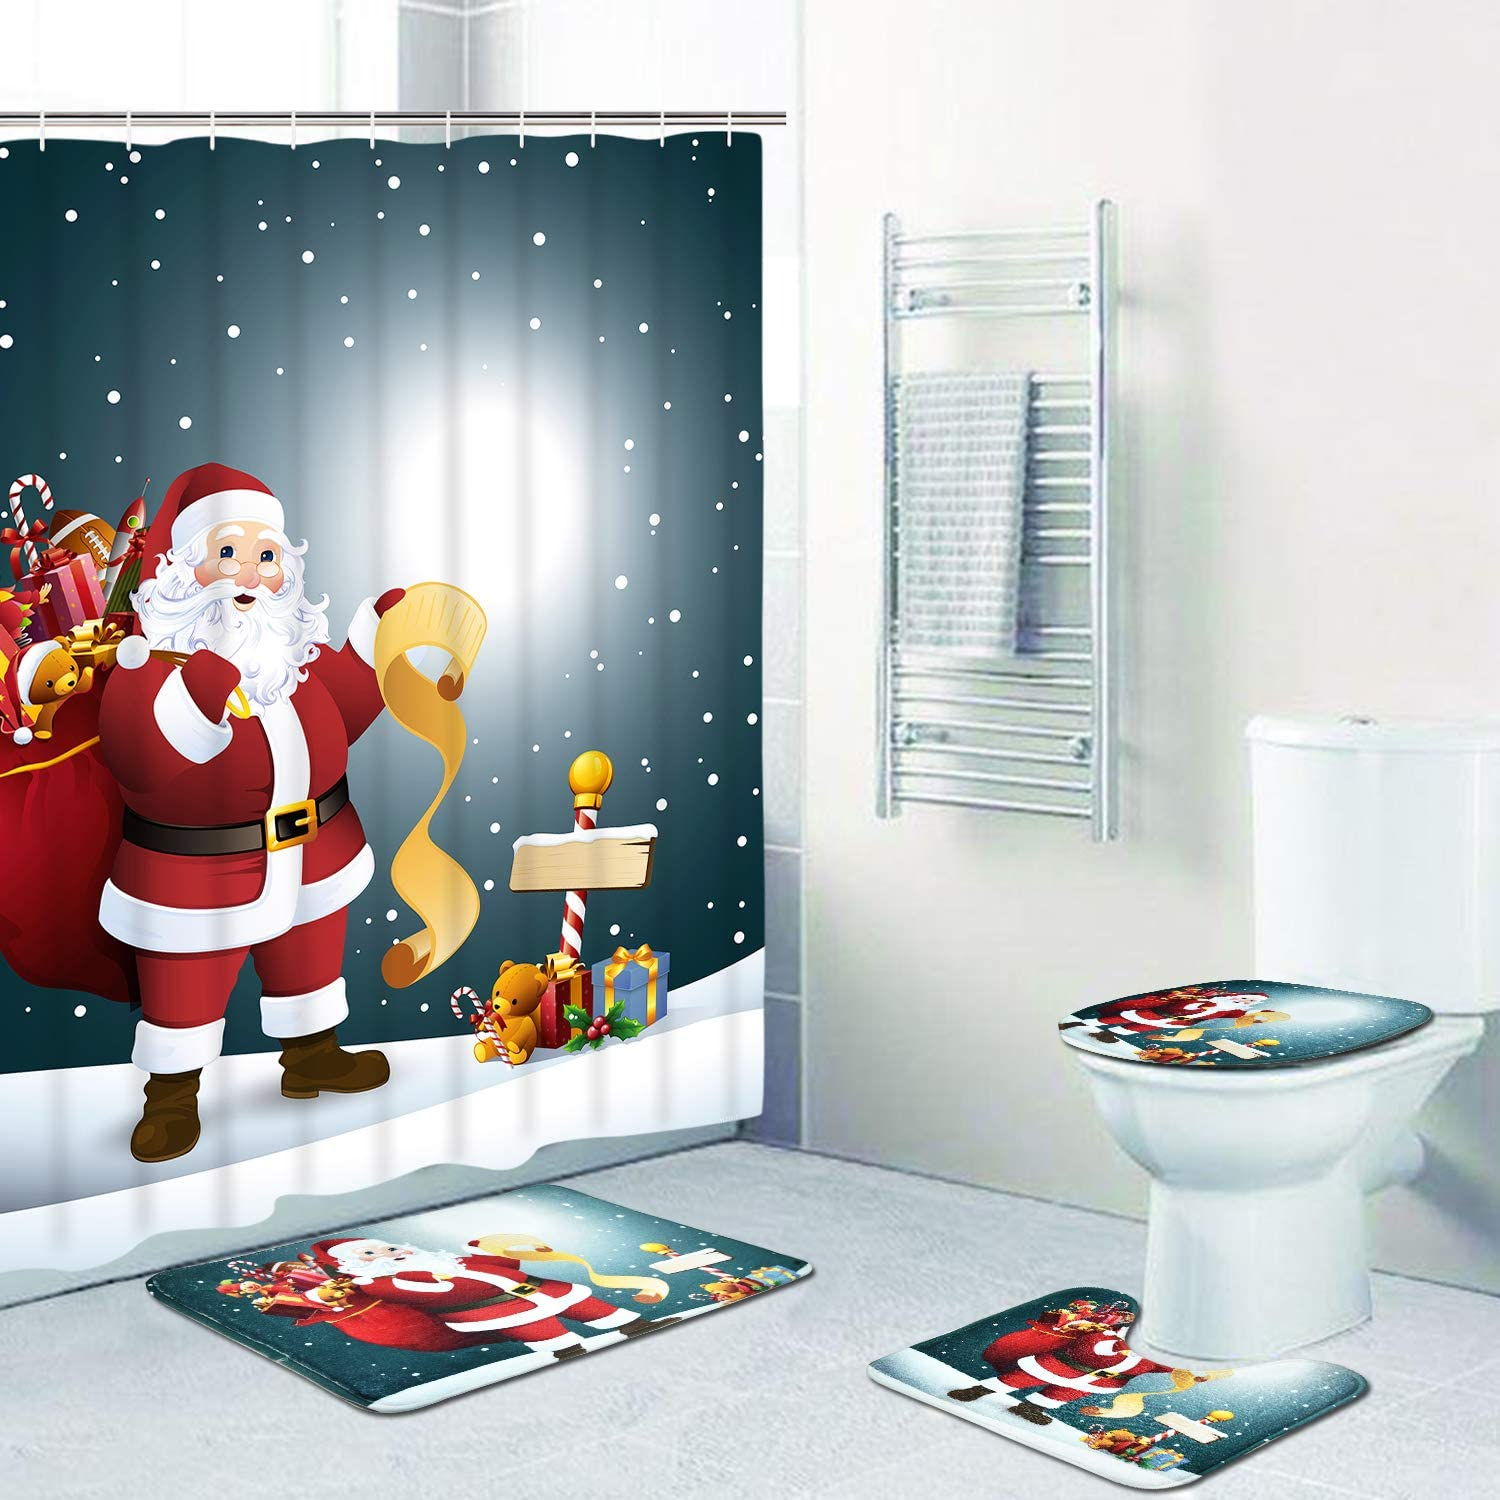 4PCS Christmas Shower Curtain Bath Mats Rugs Toilet Covers Set Bathroom Decor US